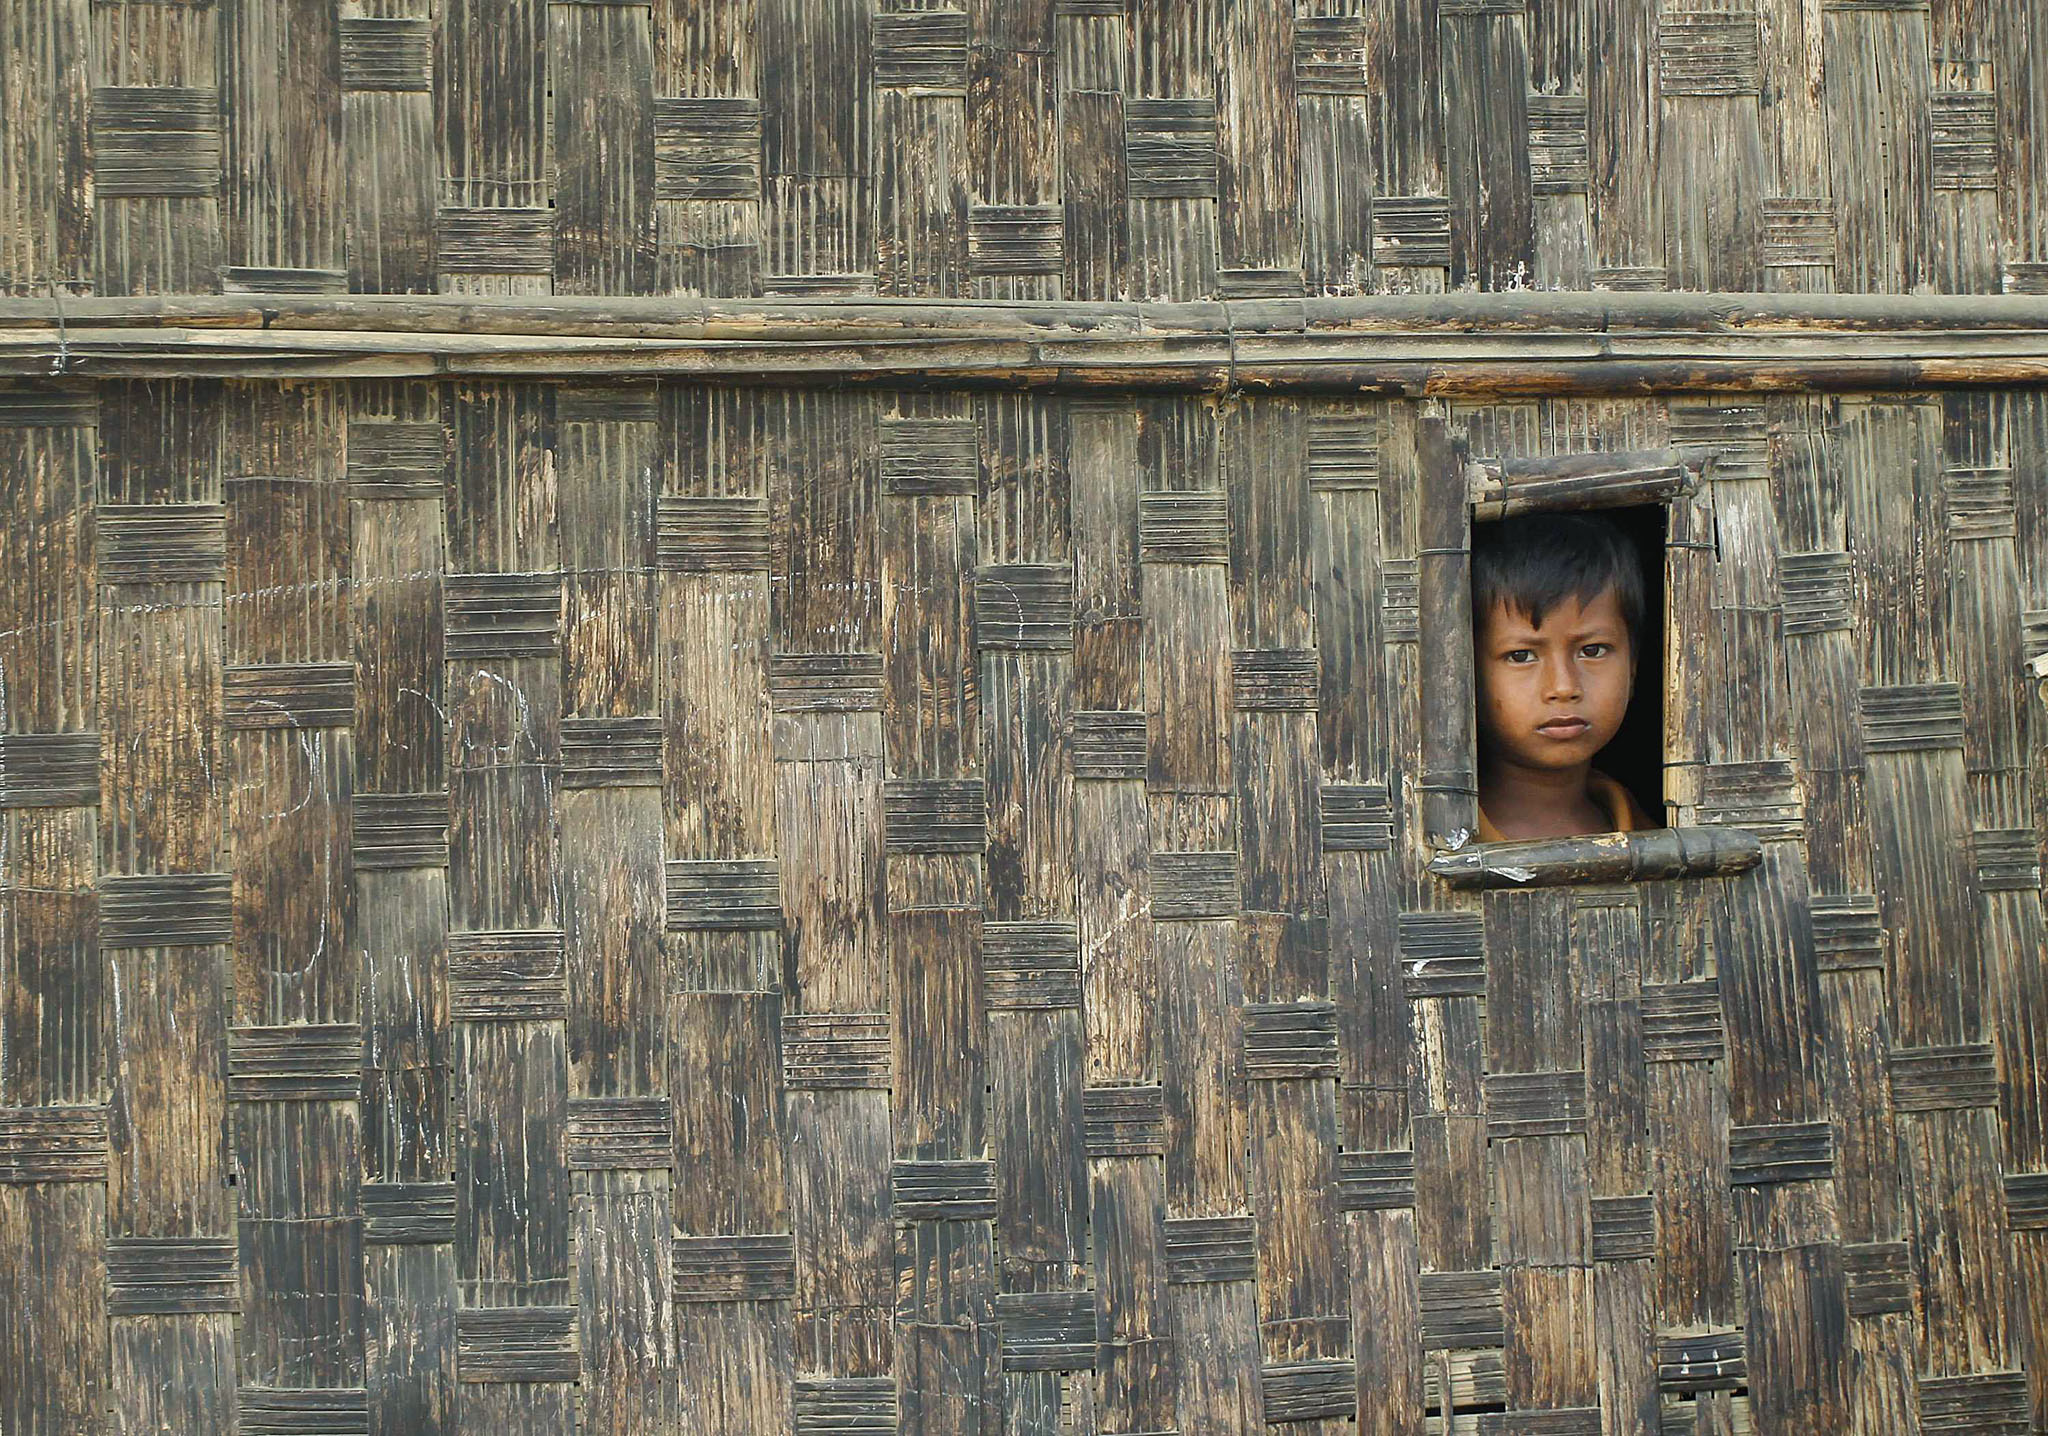 A boy looks from his temporary shelter at a Rohingya refugee camp as Myanmar's government embarks on a national census, in Sittwe April 2, 2014. At least 20,000 people in displacement camps around Sittwe will run out of drinking water within 10 days, while food stocks will run out within two weeks, imperilling thousands more. In the absence of nongovernment organisations (NGOs), the United Nations is working with the government to bring emergency supplies to camps, but that is only a short-term solution, said Pierre Peron, a spokesman for the UN Office for the Coordination of Humanitarian Affairs. The evacuation of aid workers came as Myanmar prepared to launch its first census since 1983, which sparked controversy because it included questions on religion and ethnicity. Those are sensitive subjects in a country riven by sectarian tensions and especially in Rakhine, which is home to a million mostly stateless Rohingya whom the government refers to as Bengali, implying they are illegal immigrants from Bangladesh